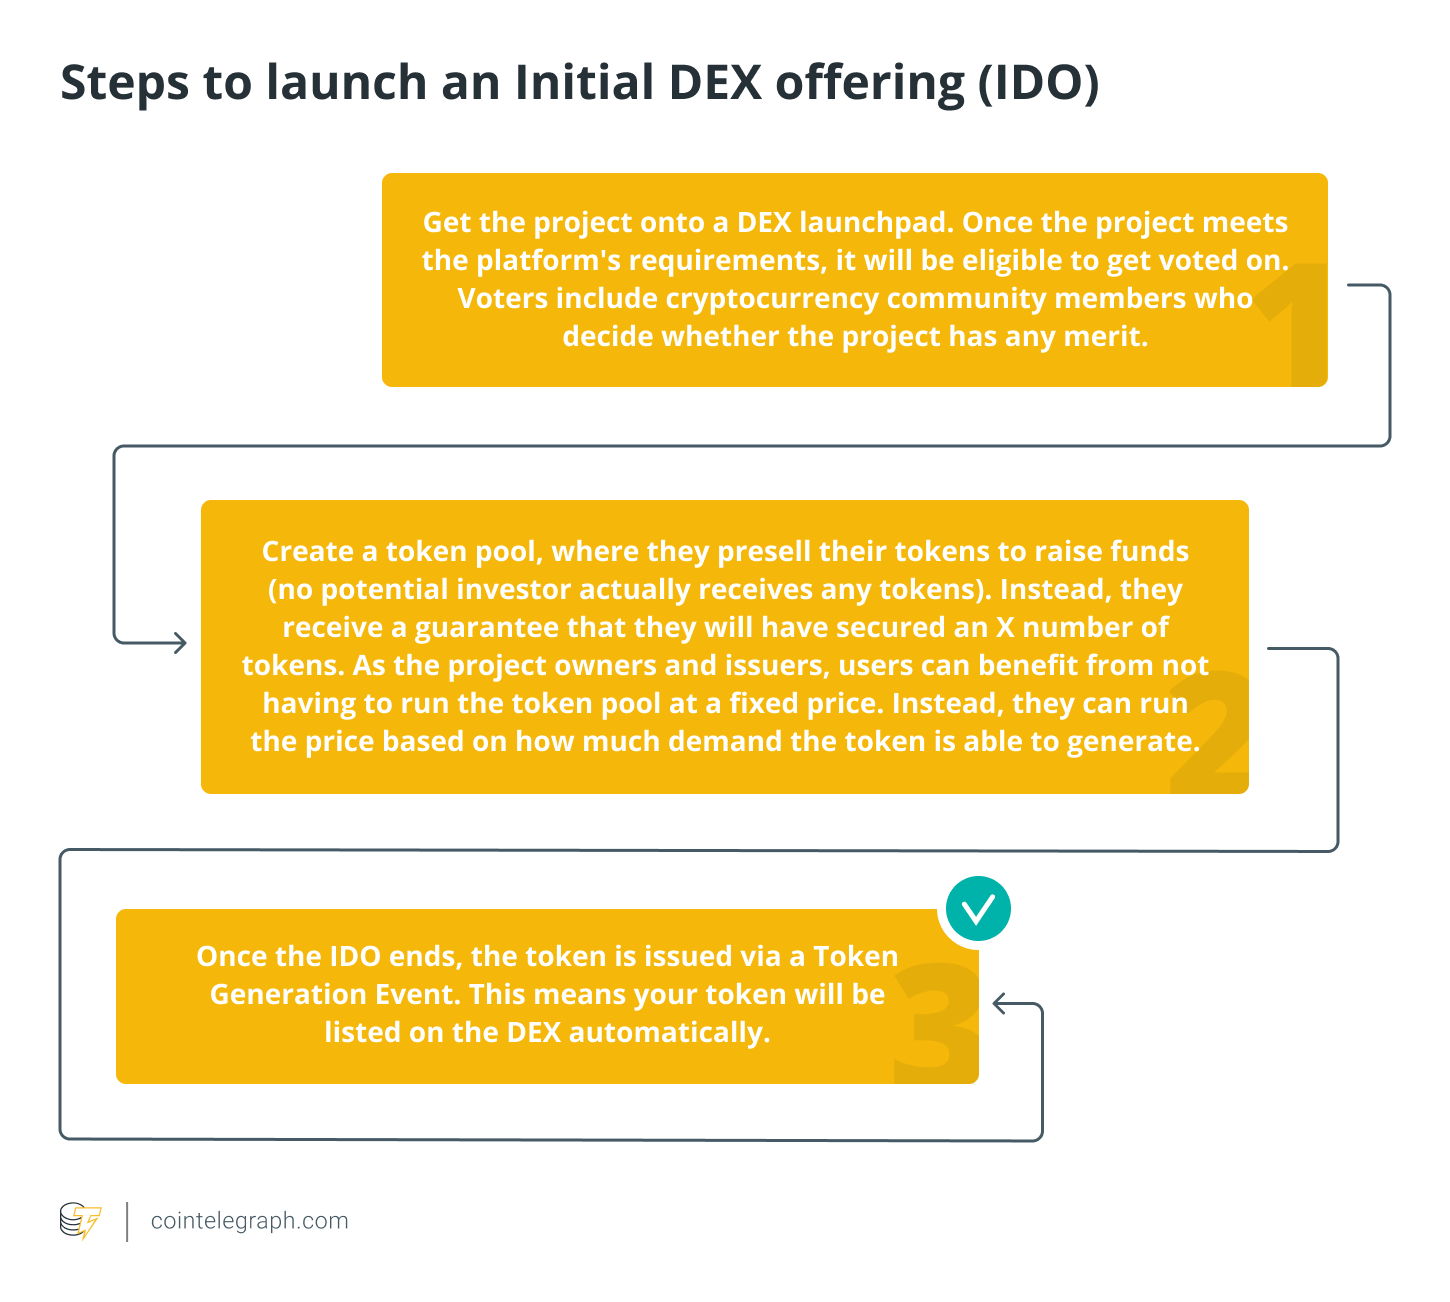 Steps to launch an Initial DEX offering (IDO)